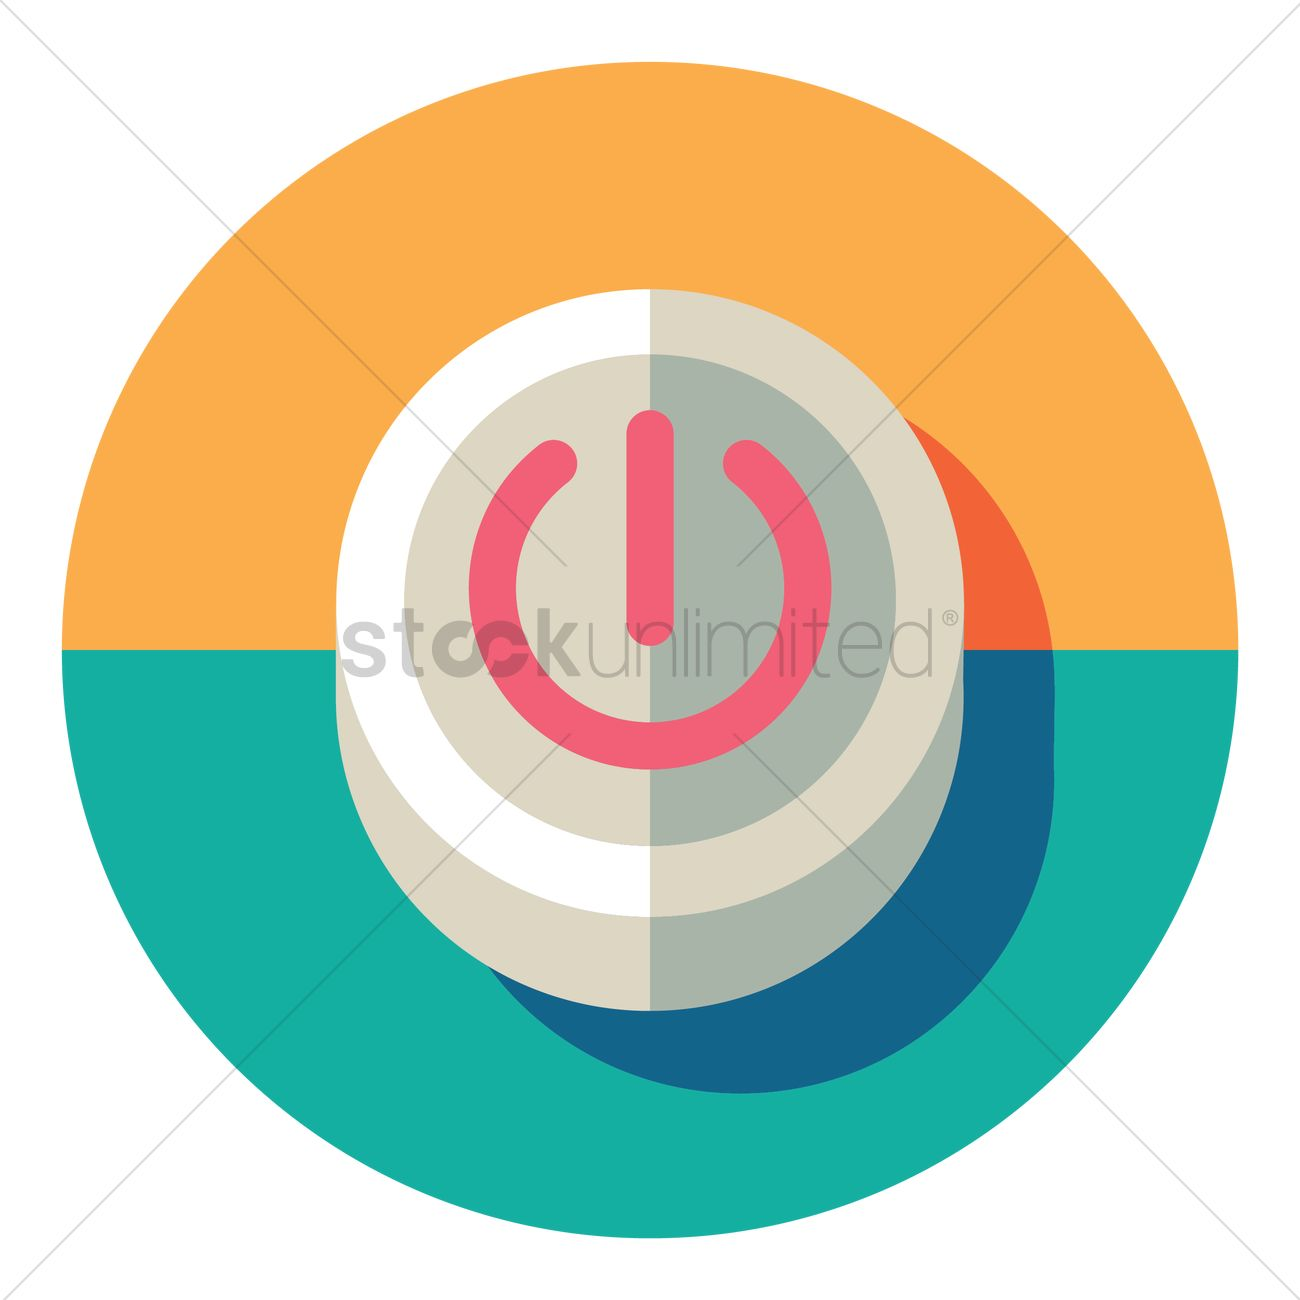 Power Onoff Button Icon Vector Image 1309018 Stockunlimited